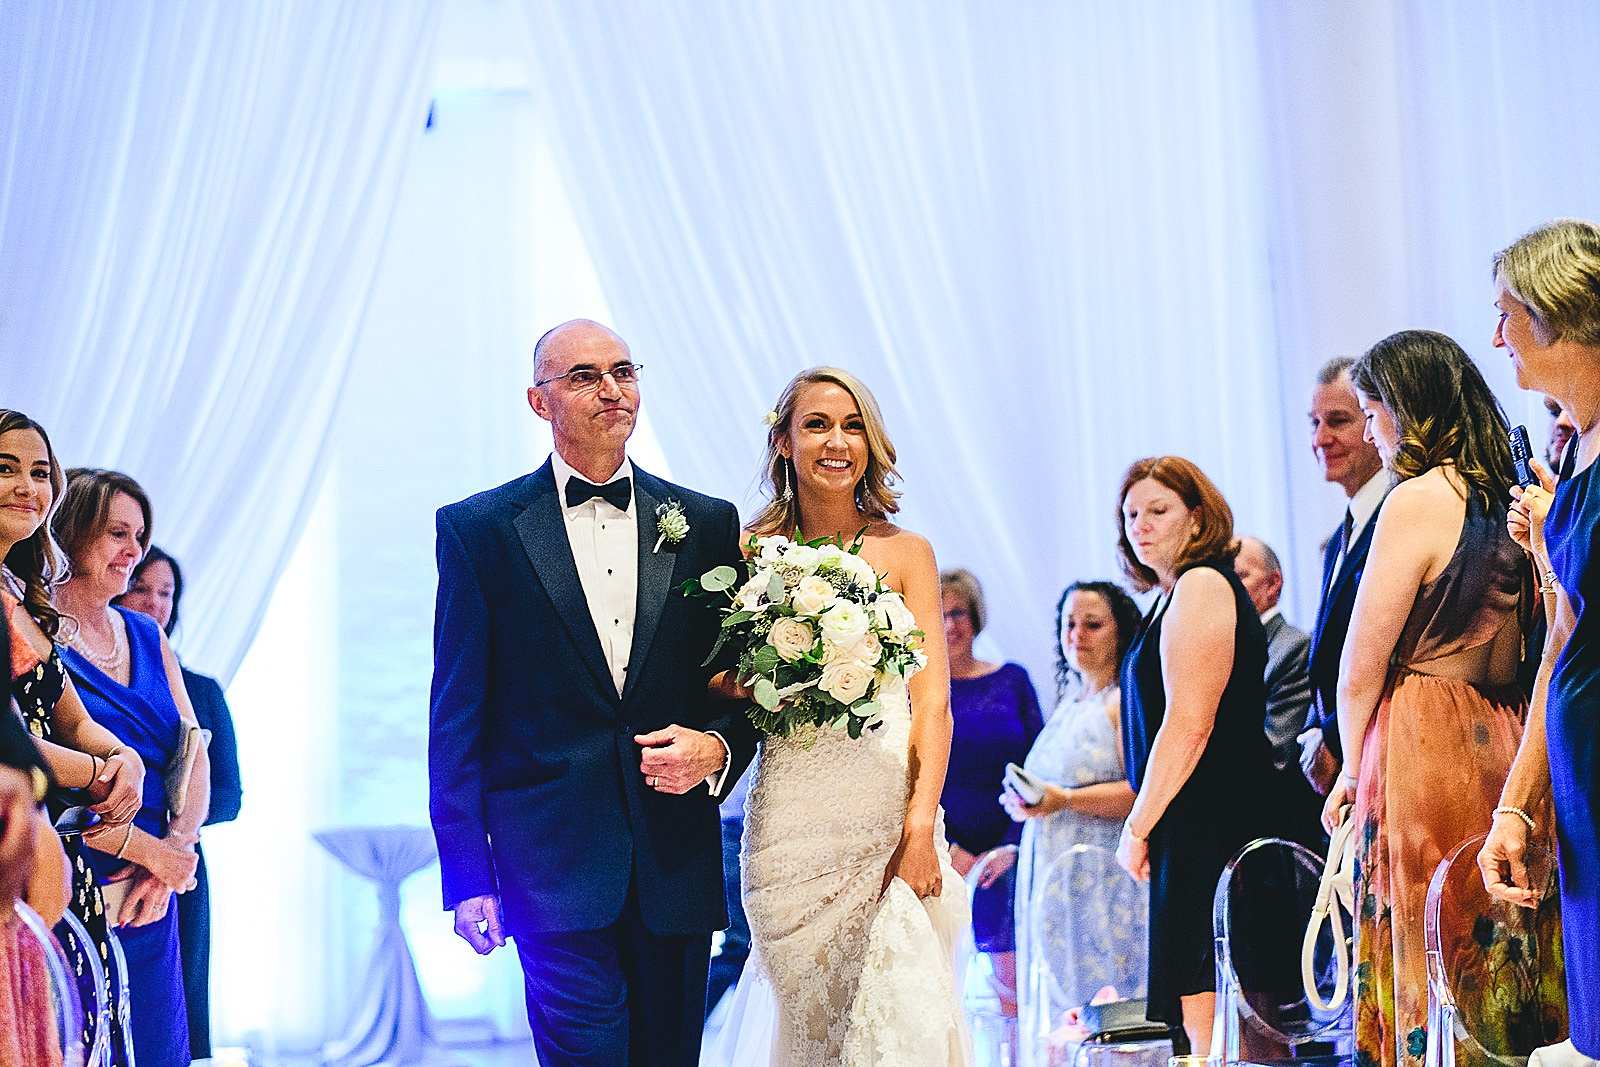 37 bride walking down the aisle - Audrey + Jake's Beautiful Chicago Wedding at Chez